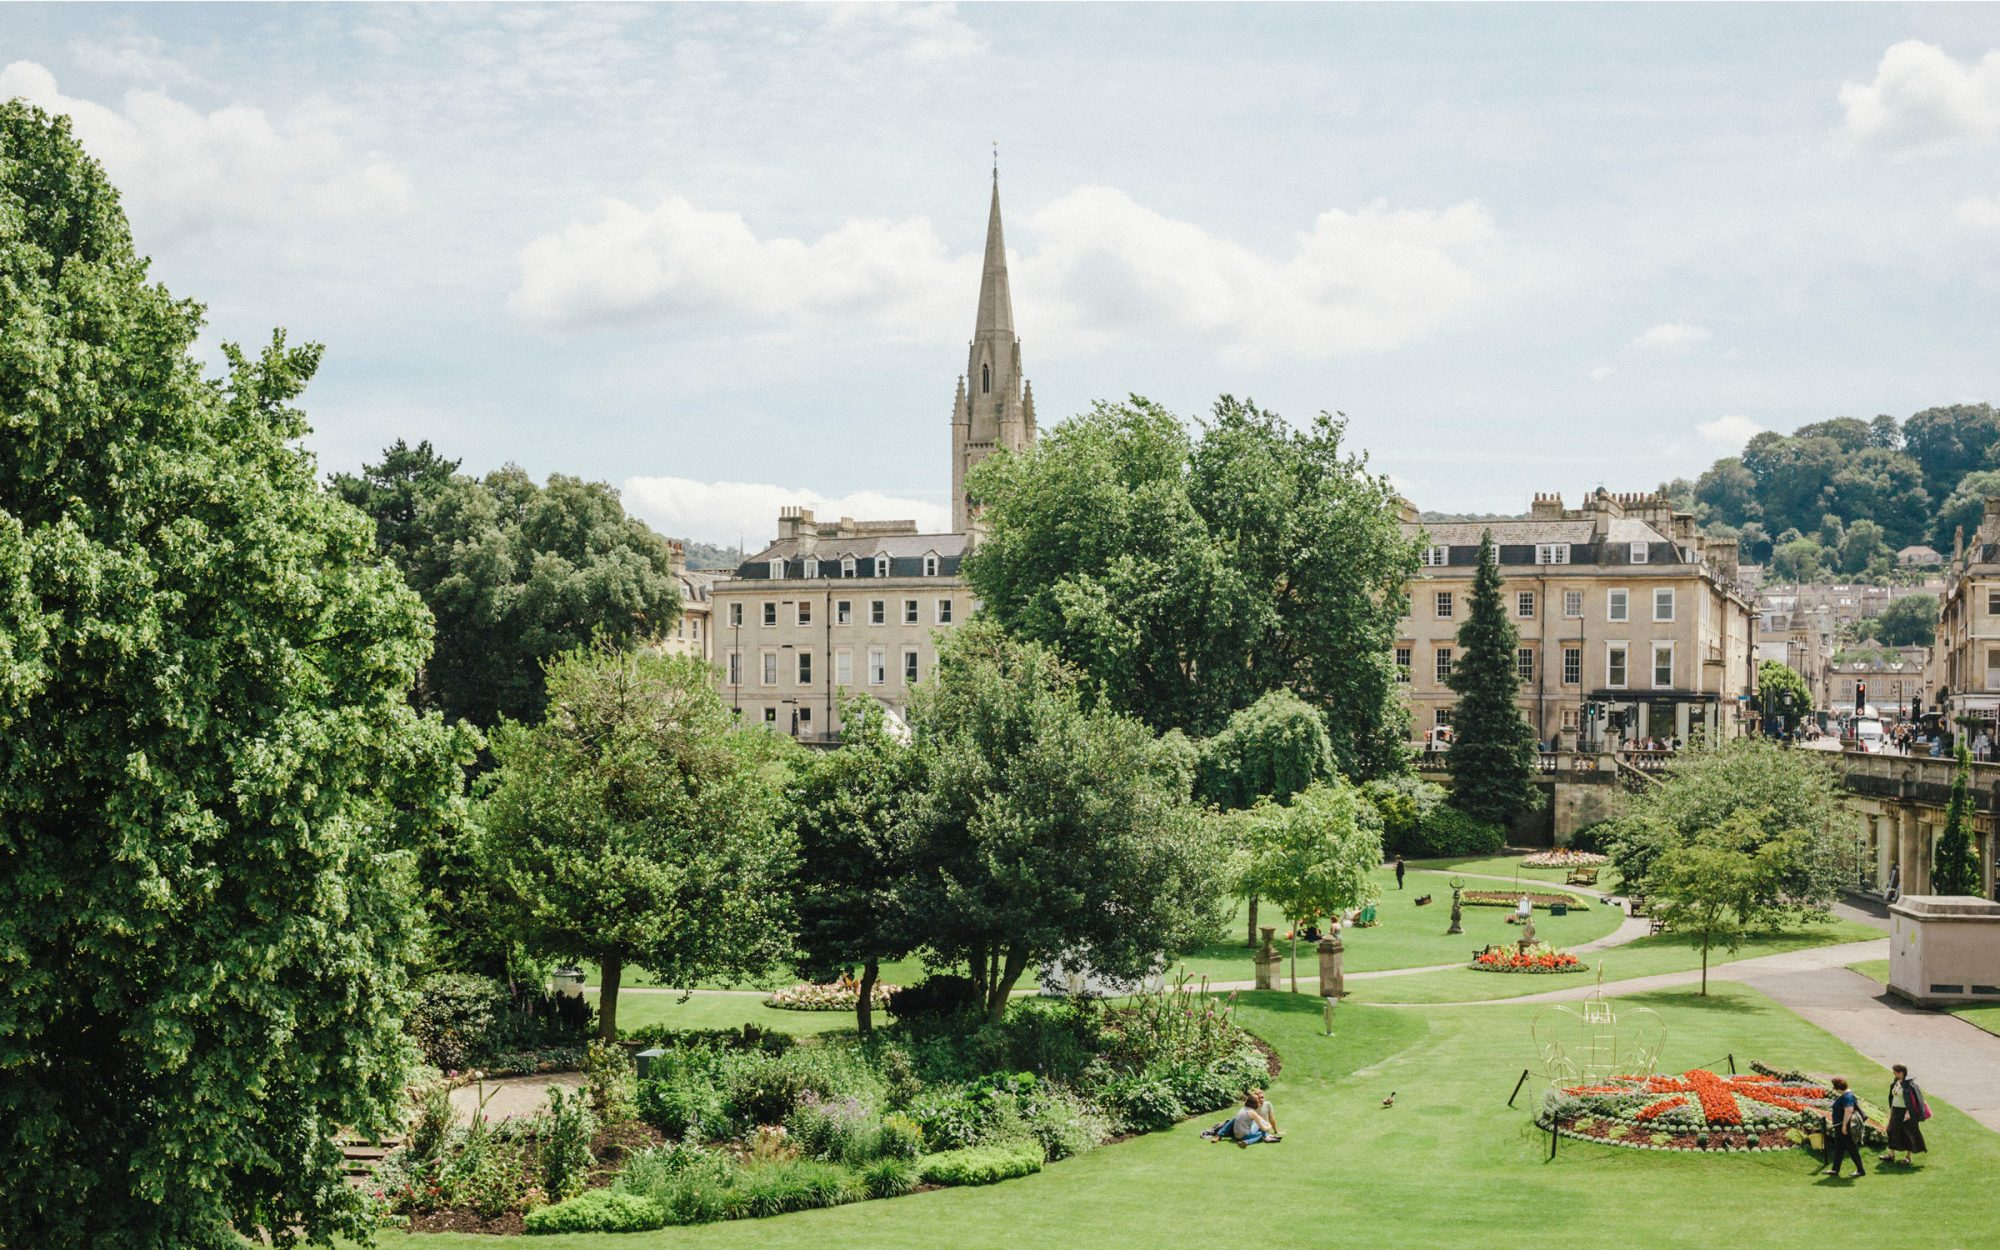 Hotels and Restaurants in Bath, England